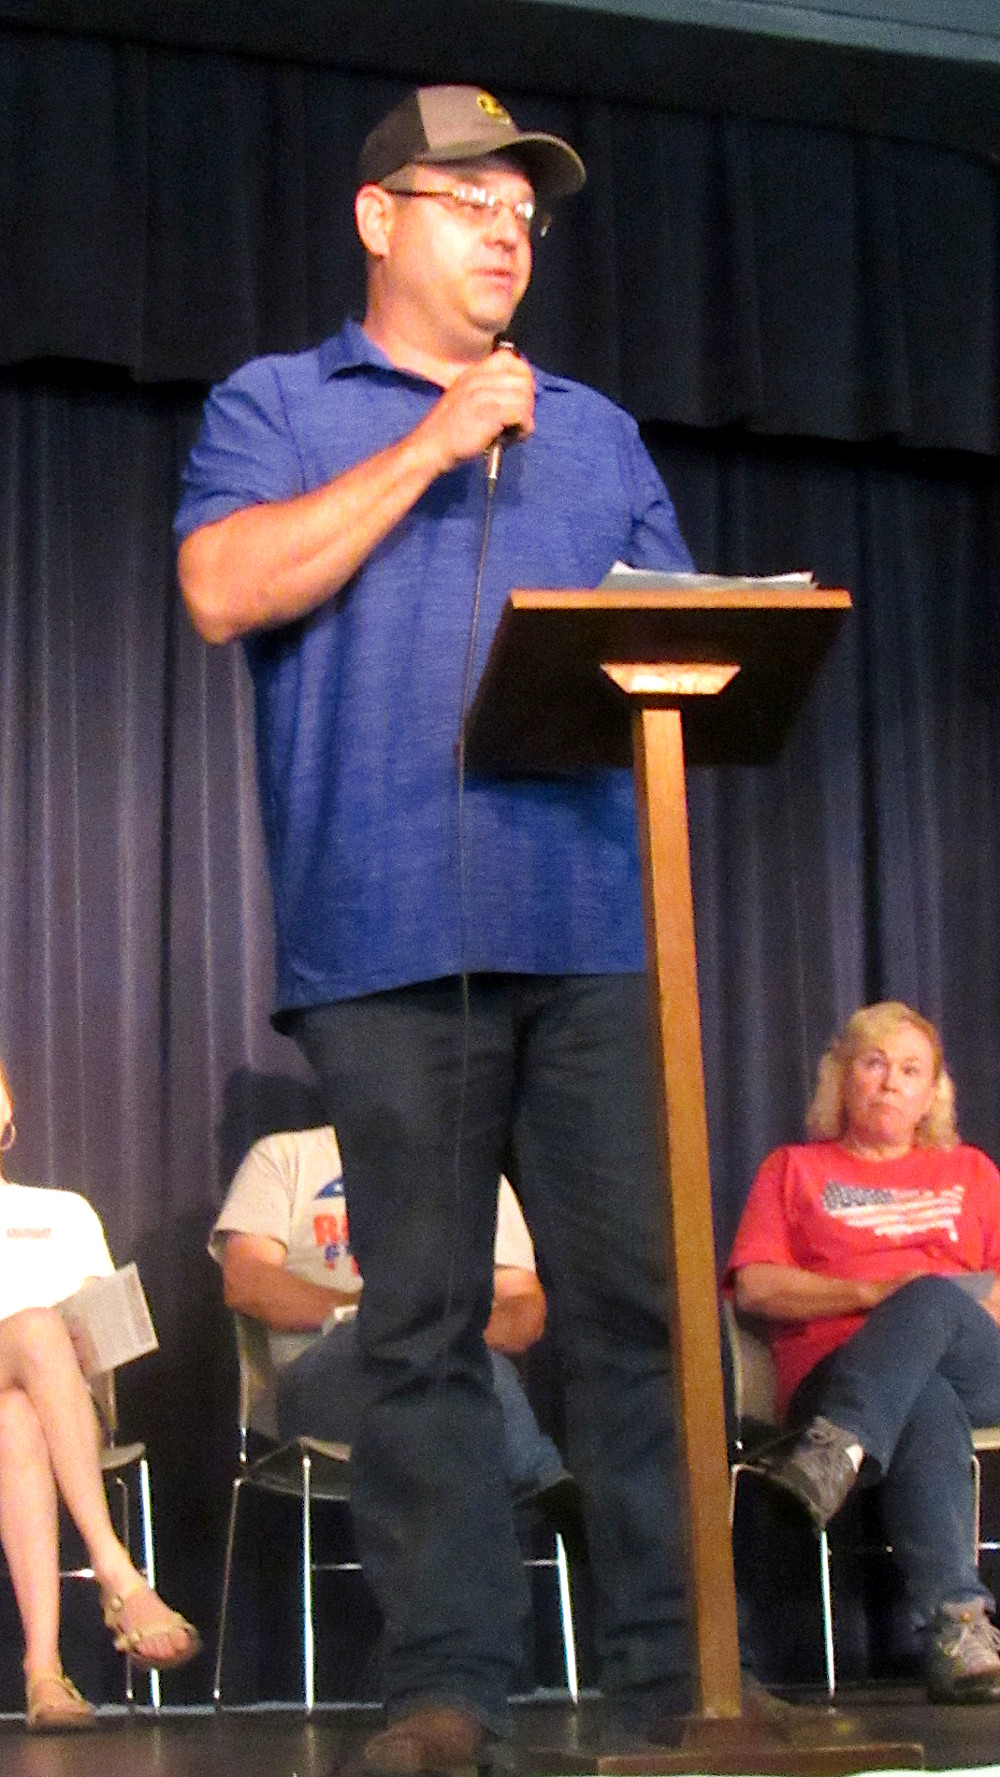 Calvin Wood, candidate for Northern Commissioner, speaks at the Star Theatre following the parade in Willow Springs. He spoke of his twenty years' experience that he hopes to put to work for the people of Howell County. (photo credit: Amanda Mendez)